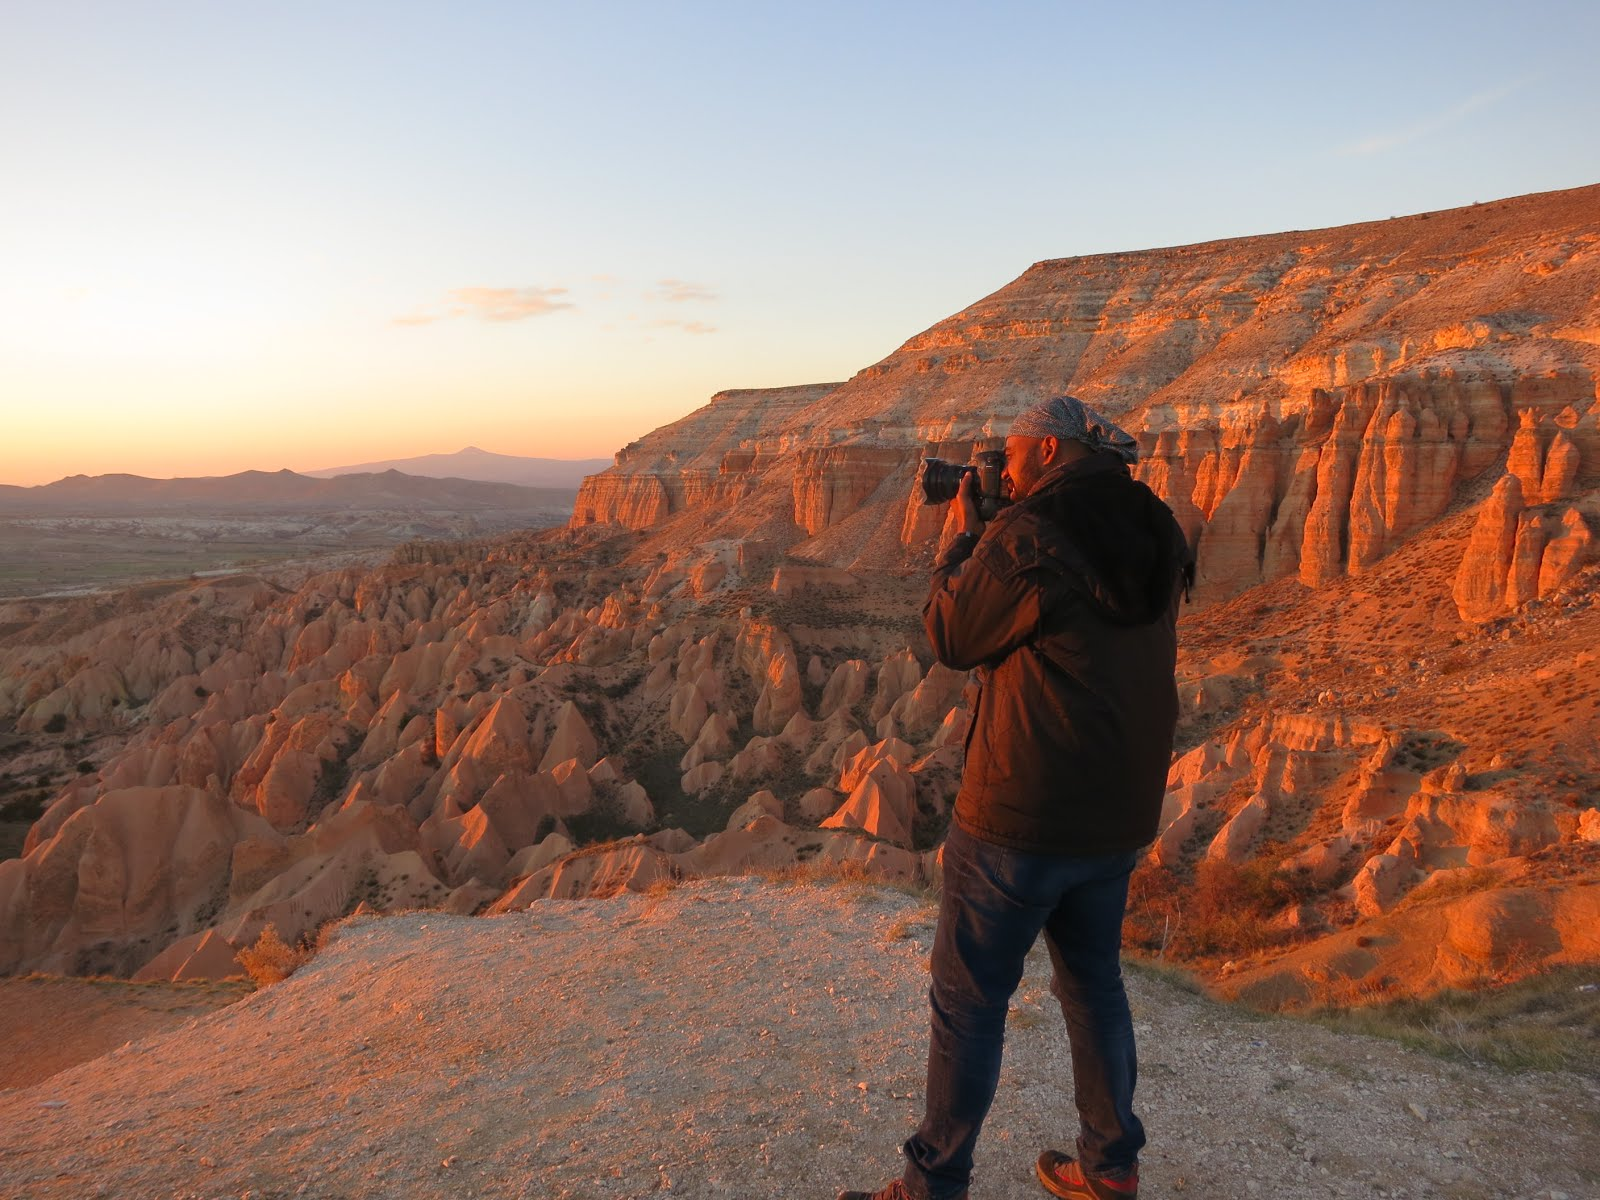 Photographing the sunset at Red Valley, Cappadocia, Turkey